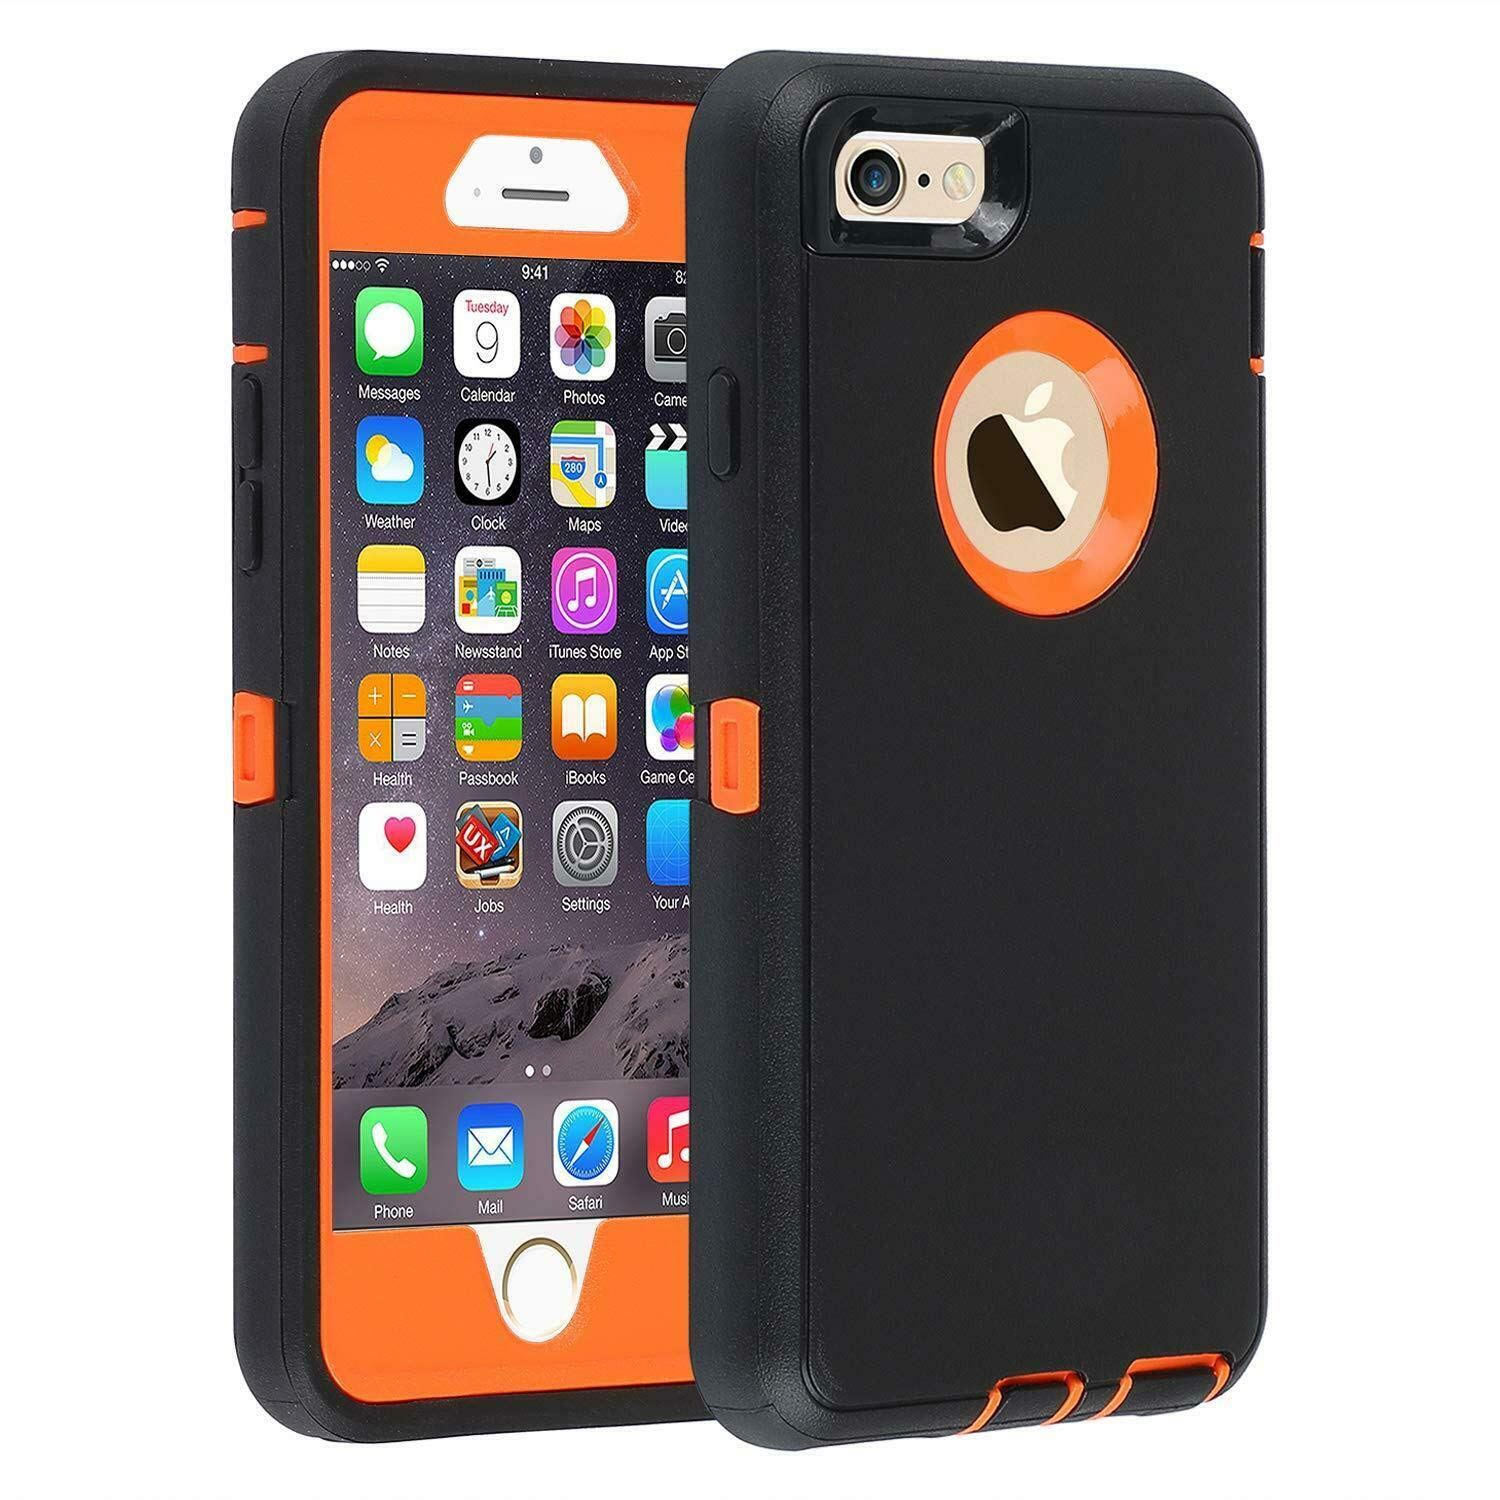 huge selection of 2dcba 41623 Amazon.com: HUANZHAN Heavy Duty Rugged Builders Shockproof Case ...